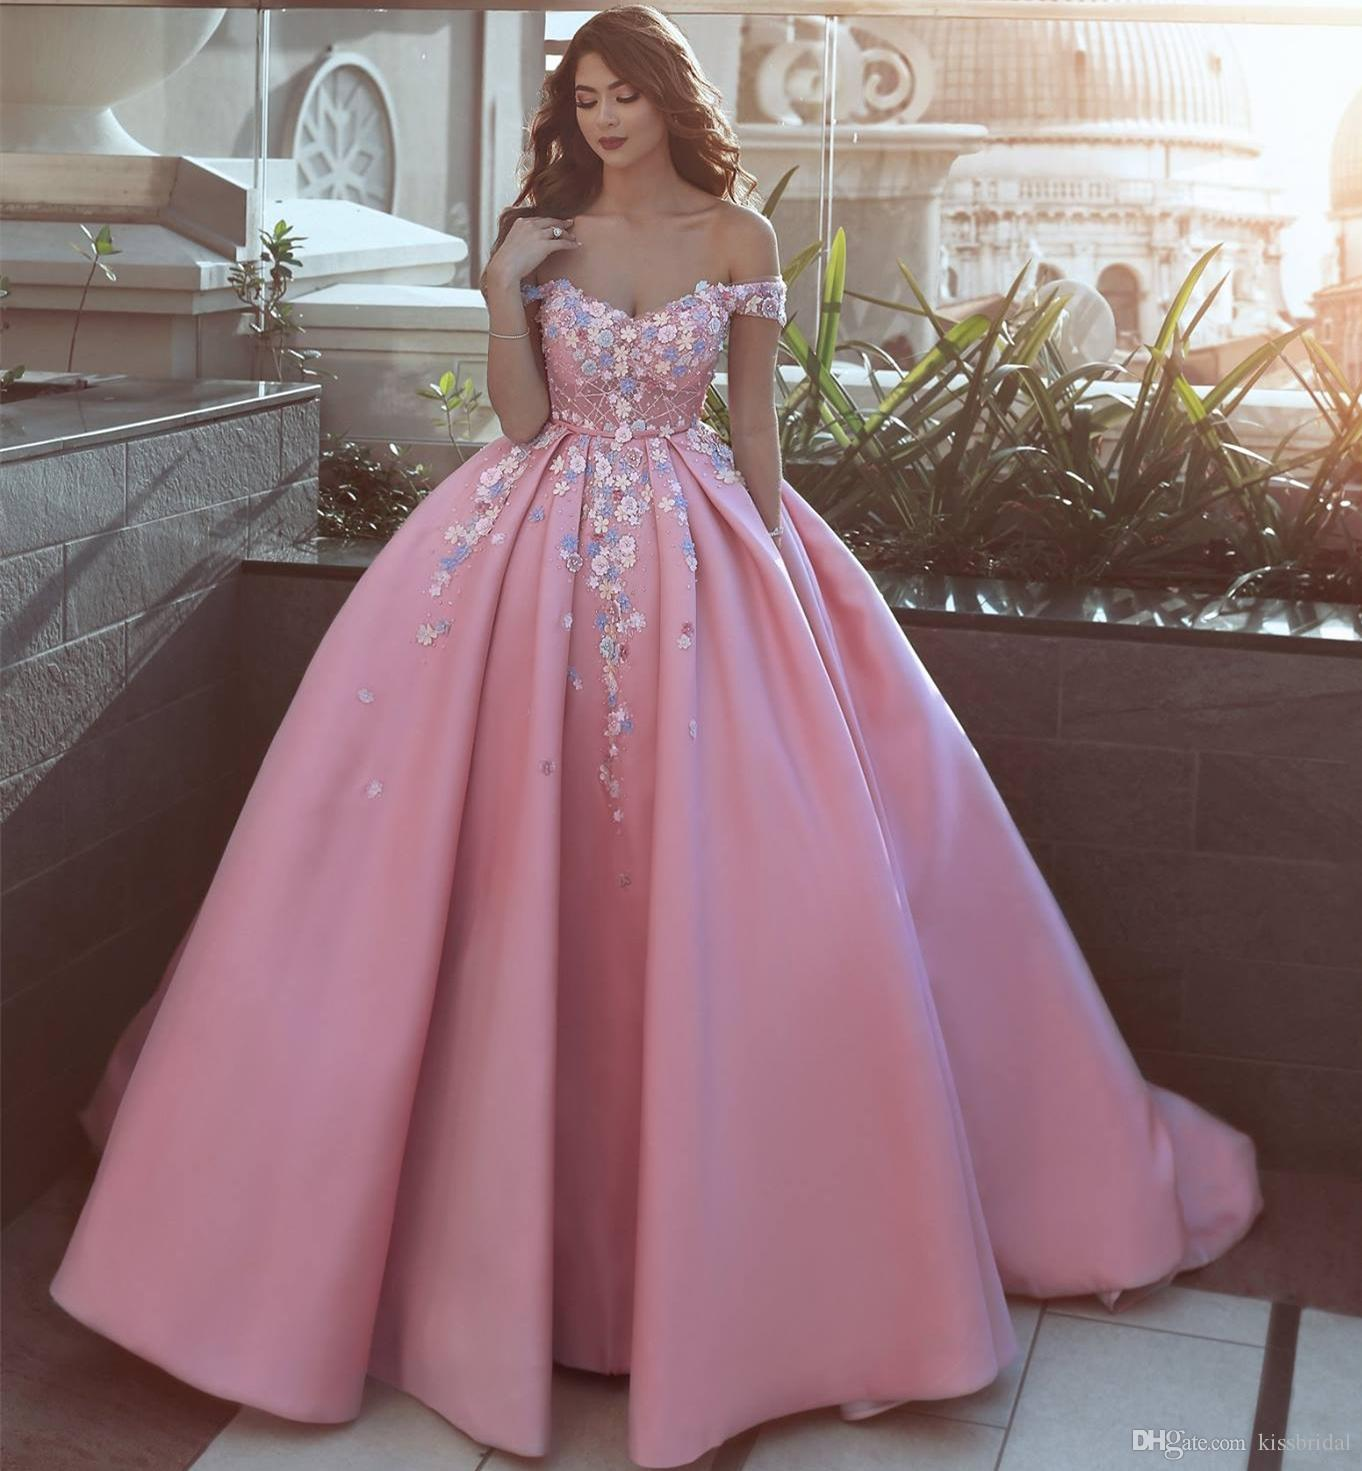 Pink Color Wedding Gown: Off Shoulder Pink Formal Evening Gowns 2019 Princess 3D